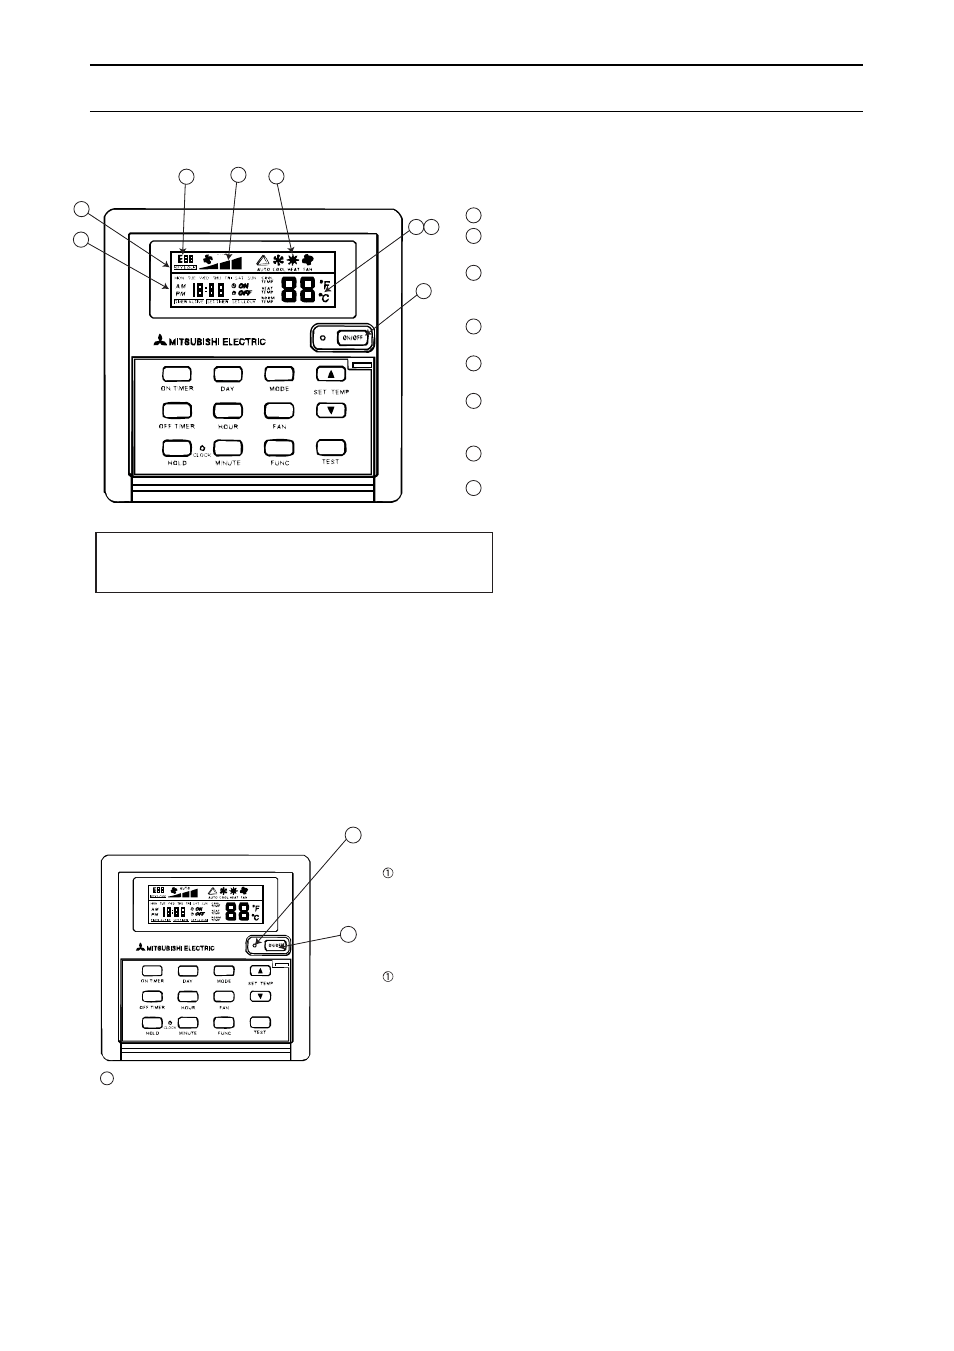 hight resolution of how to operate option pac 204rc warning 1 on off mitsubishi electric pe 15myc user manual page 109 115